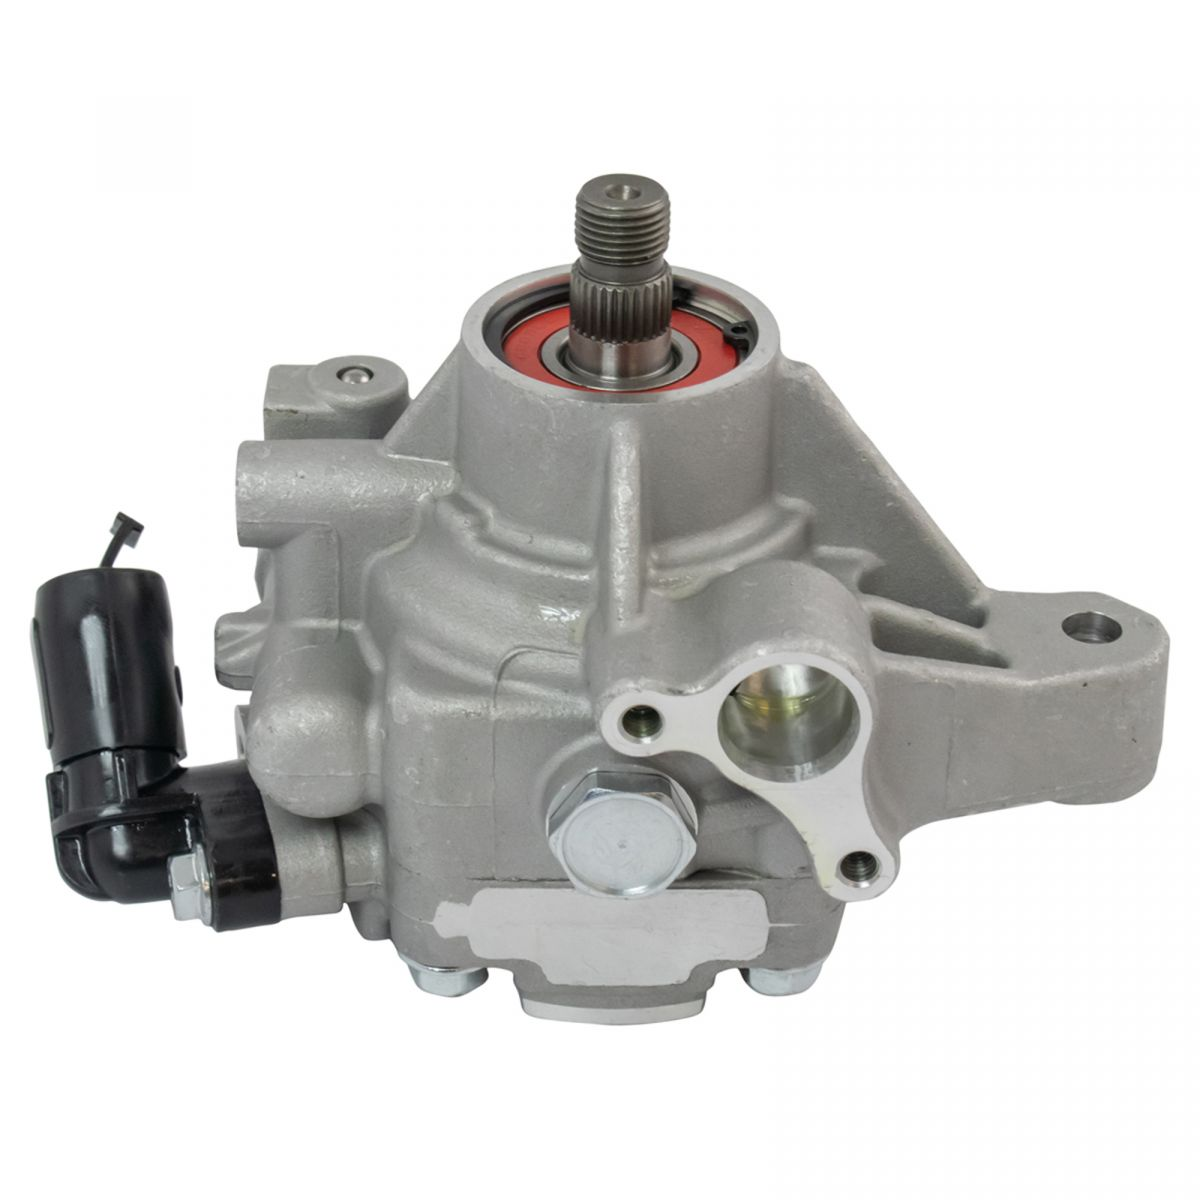 Power Steering Pump New For RDX RSX TSX Accord CR-V